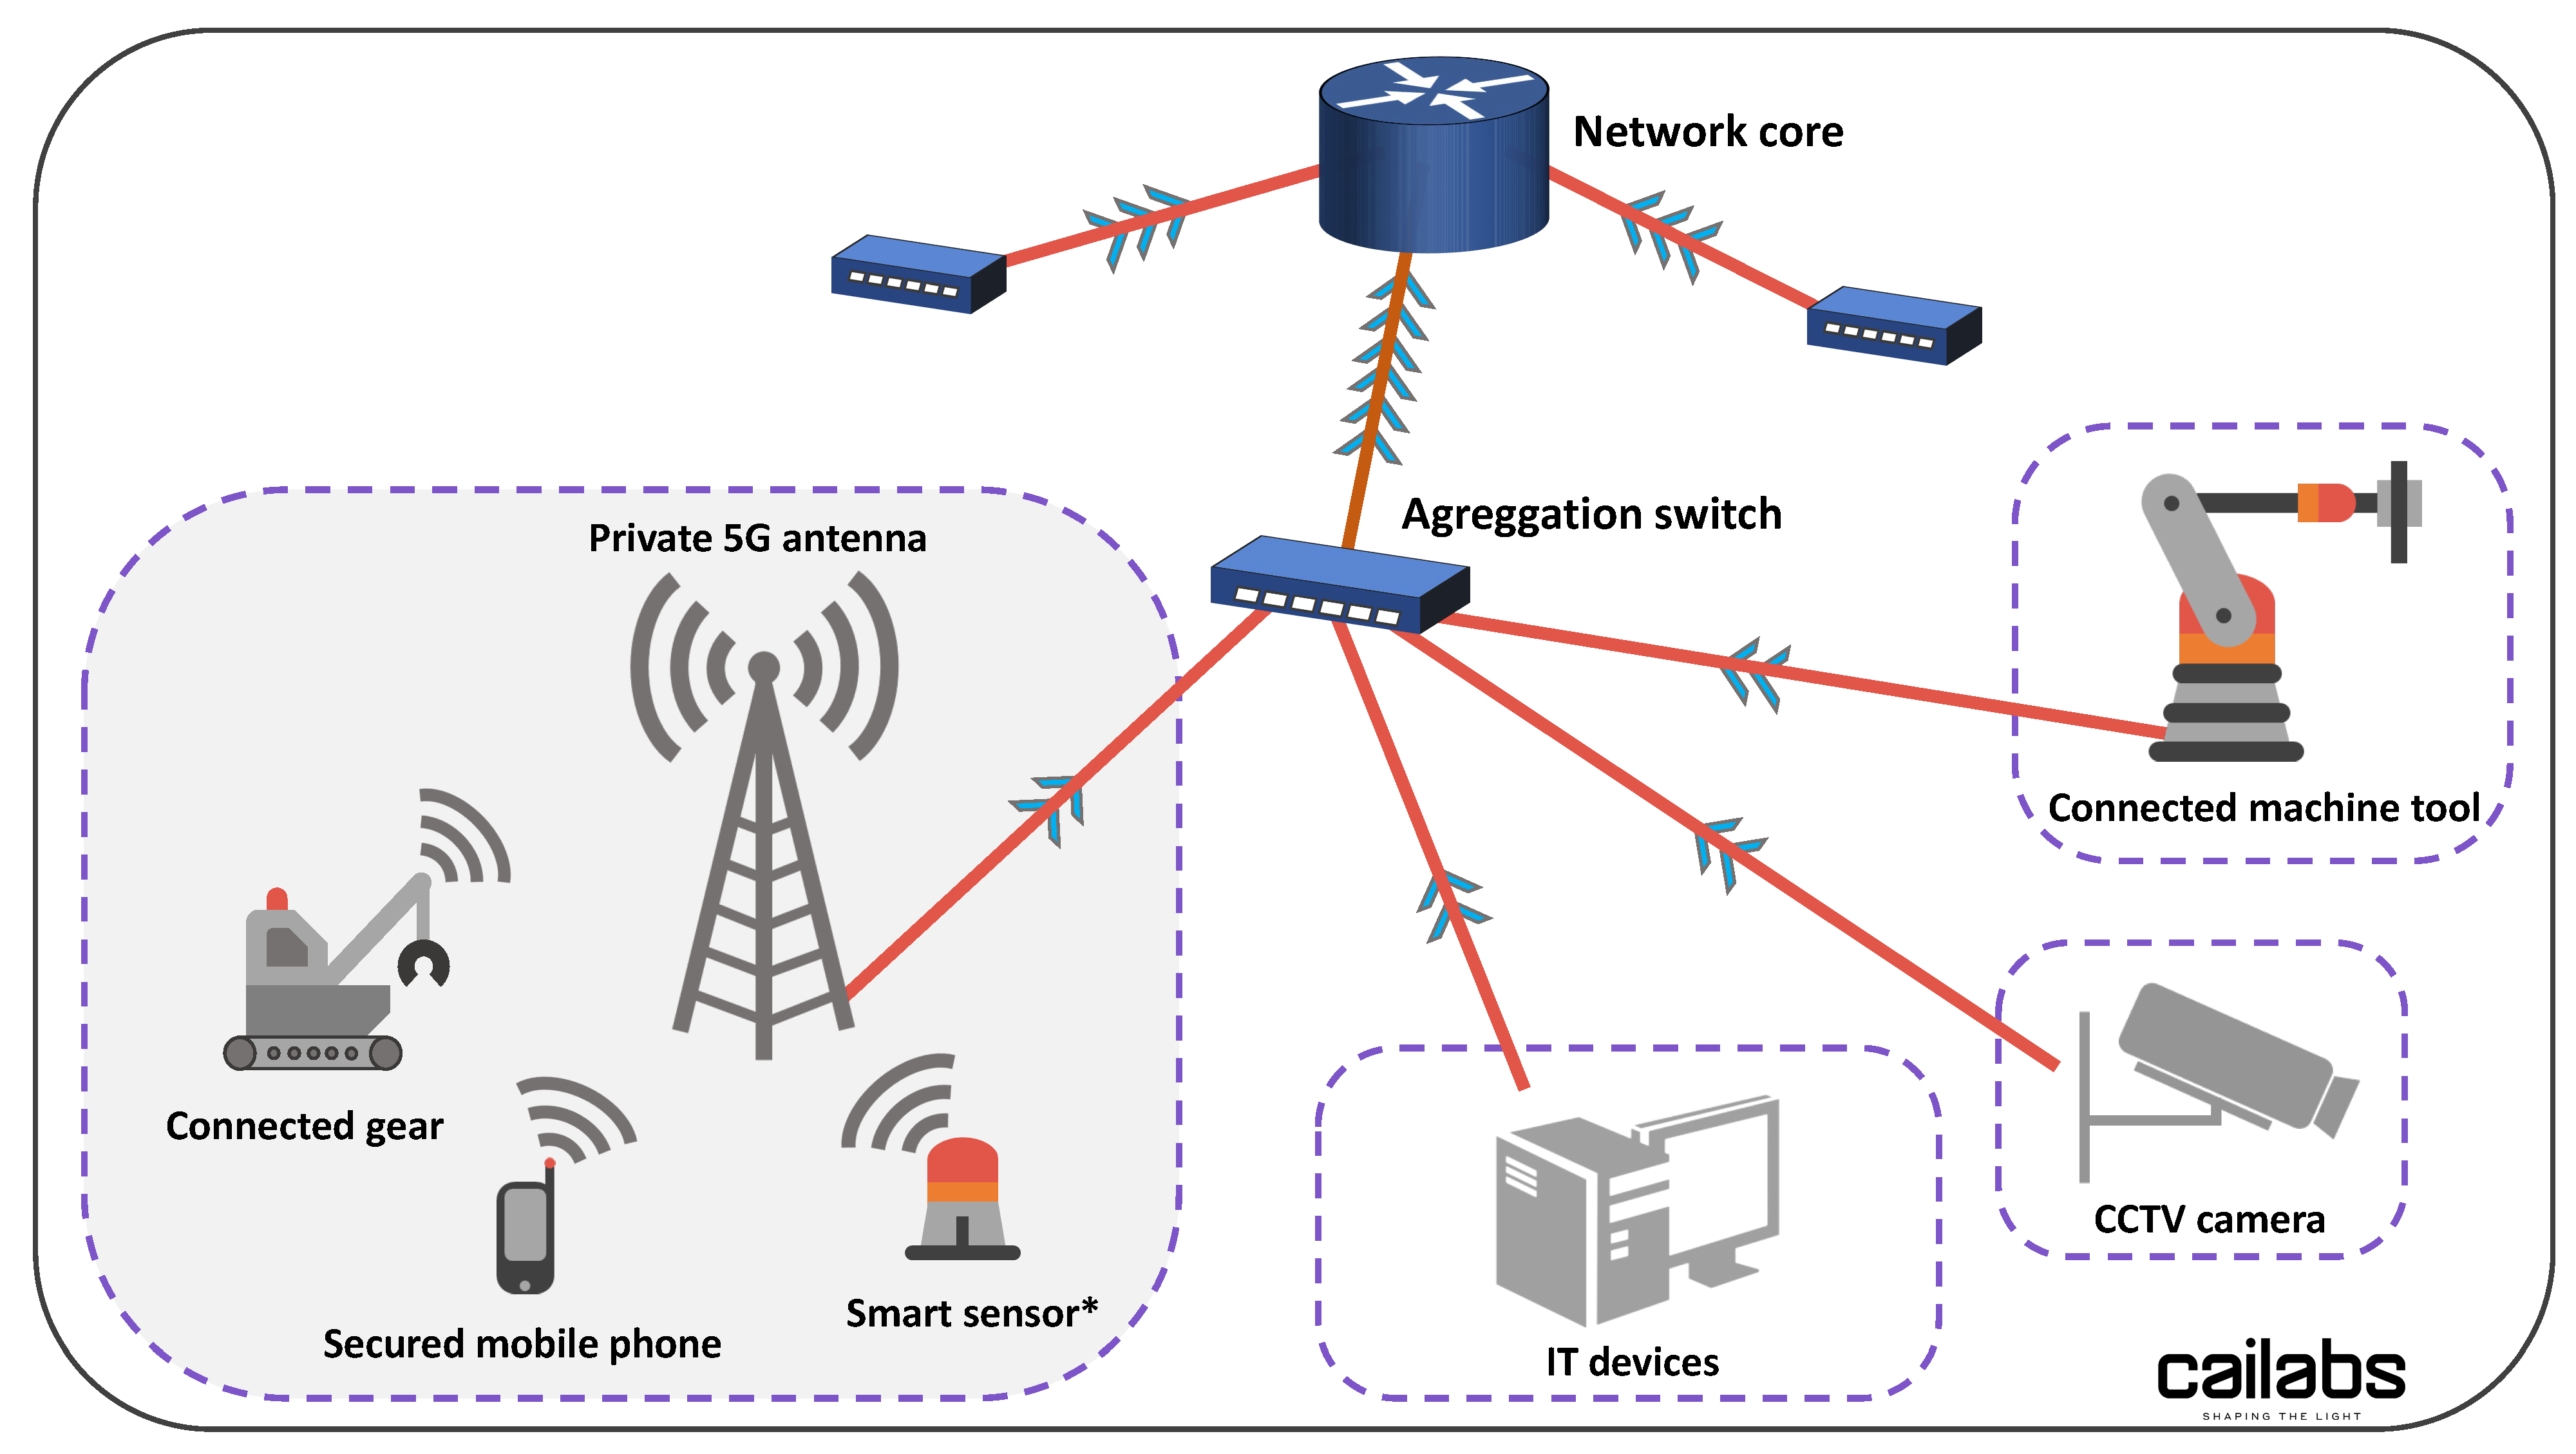 Integration of 5G in a private industrial network